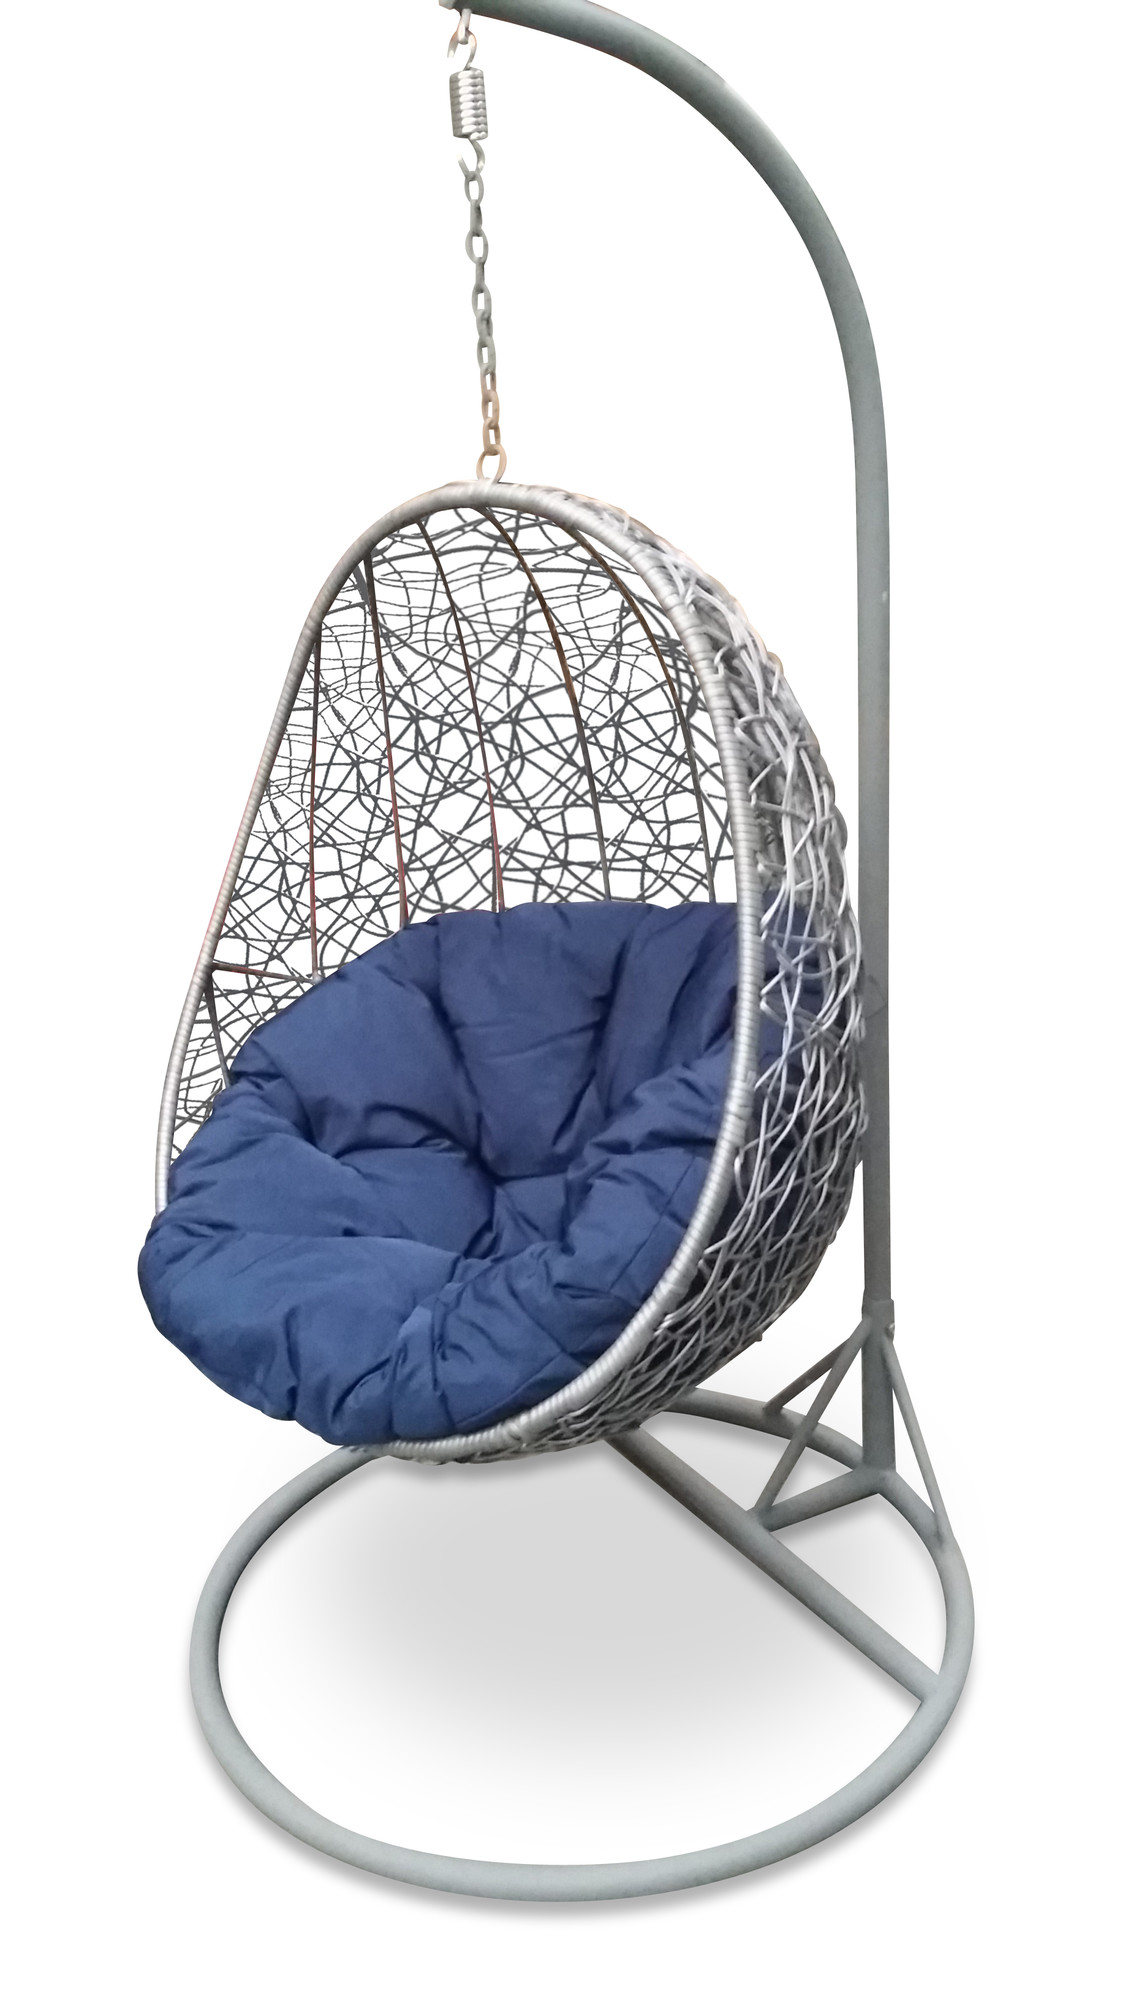 Cocoon hanging chair design decoration for Hanging cocoon chair ikea